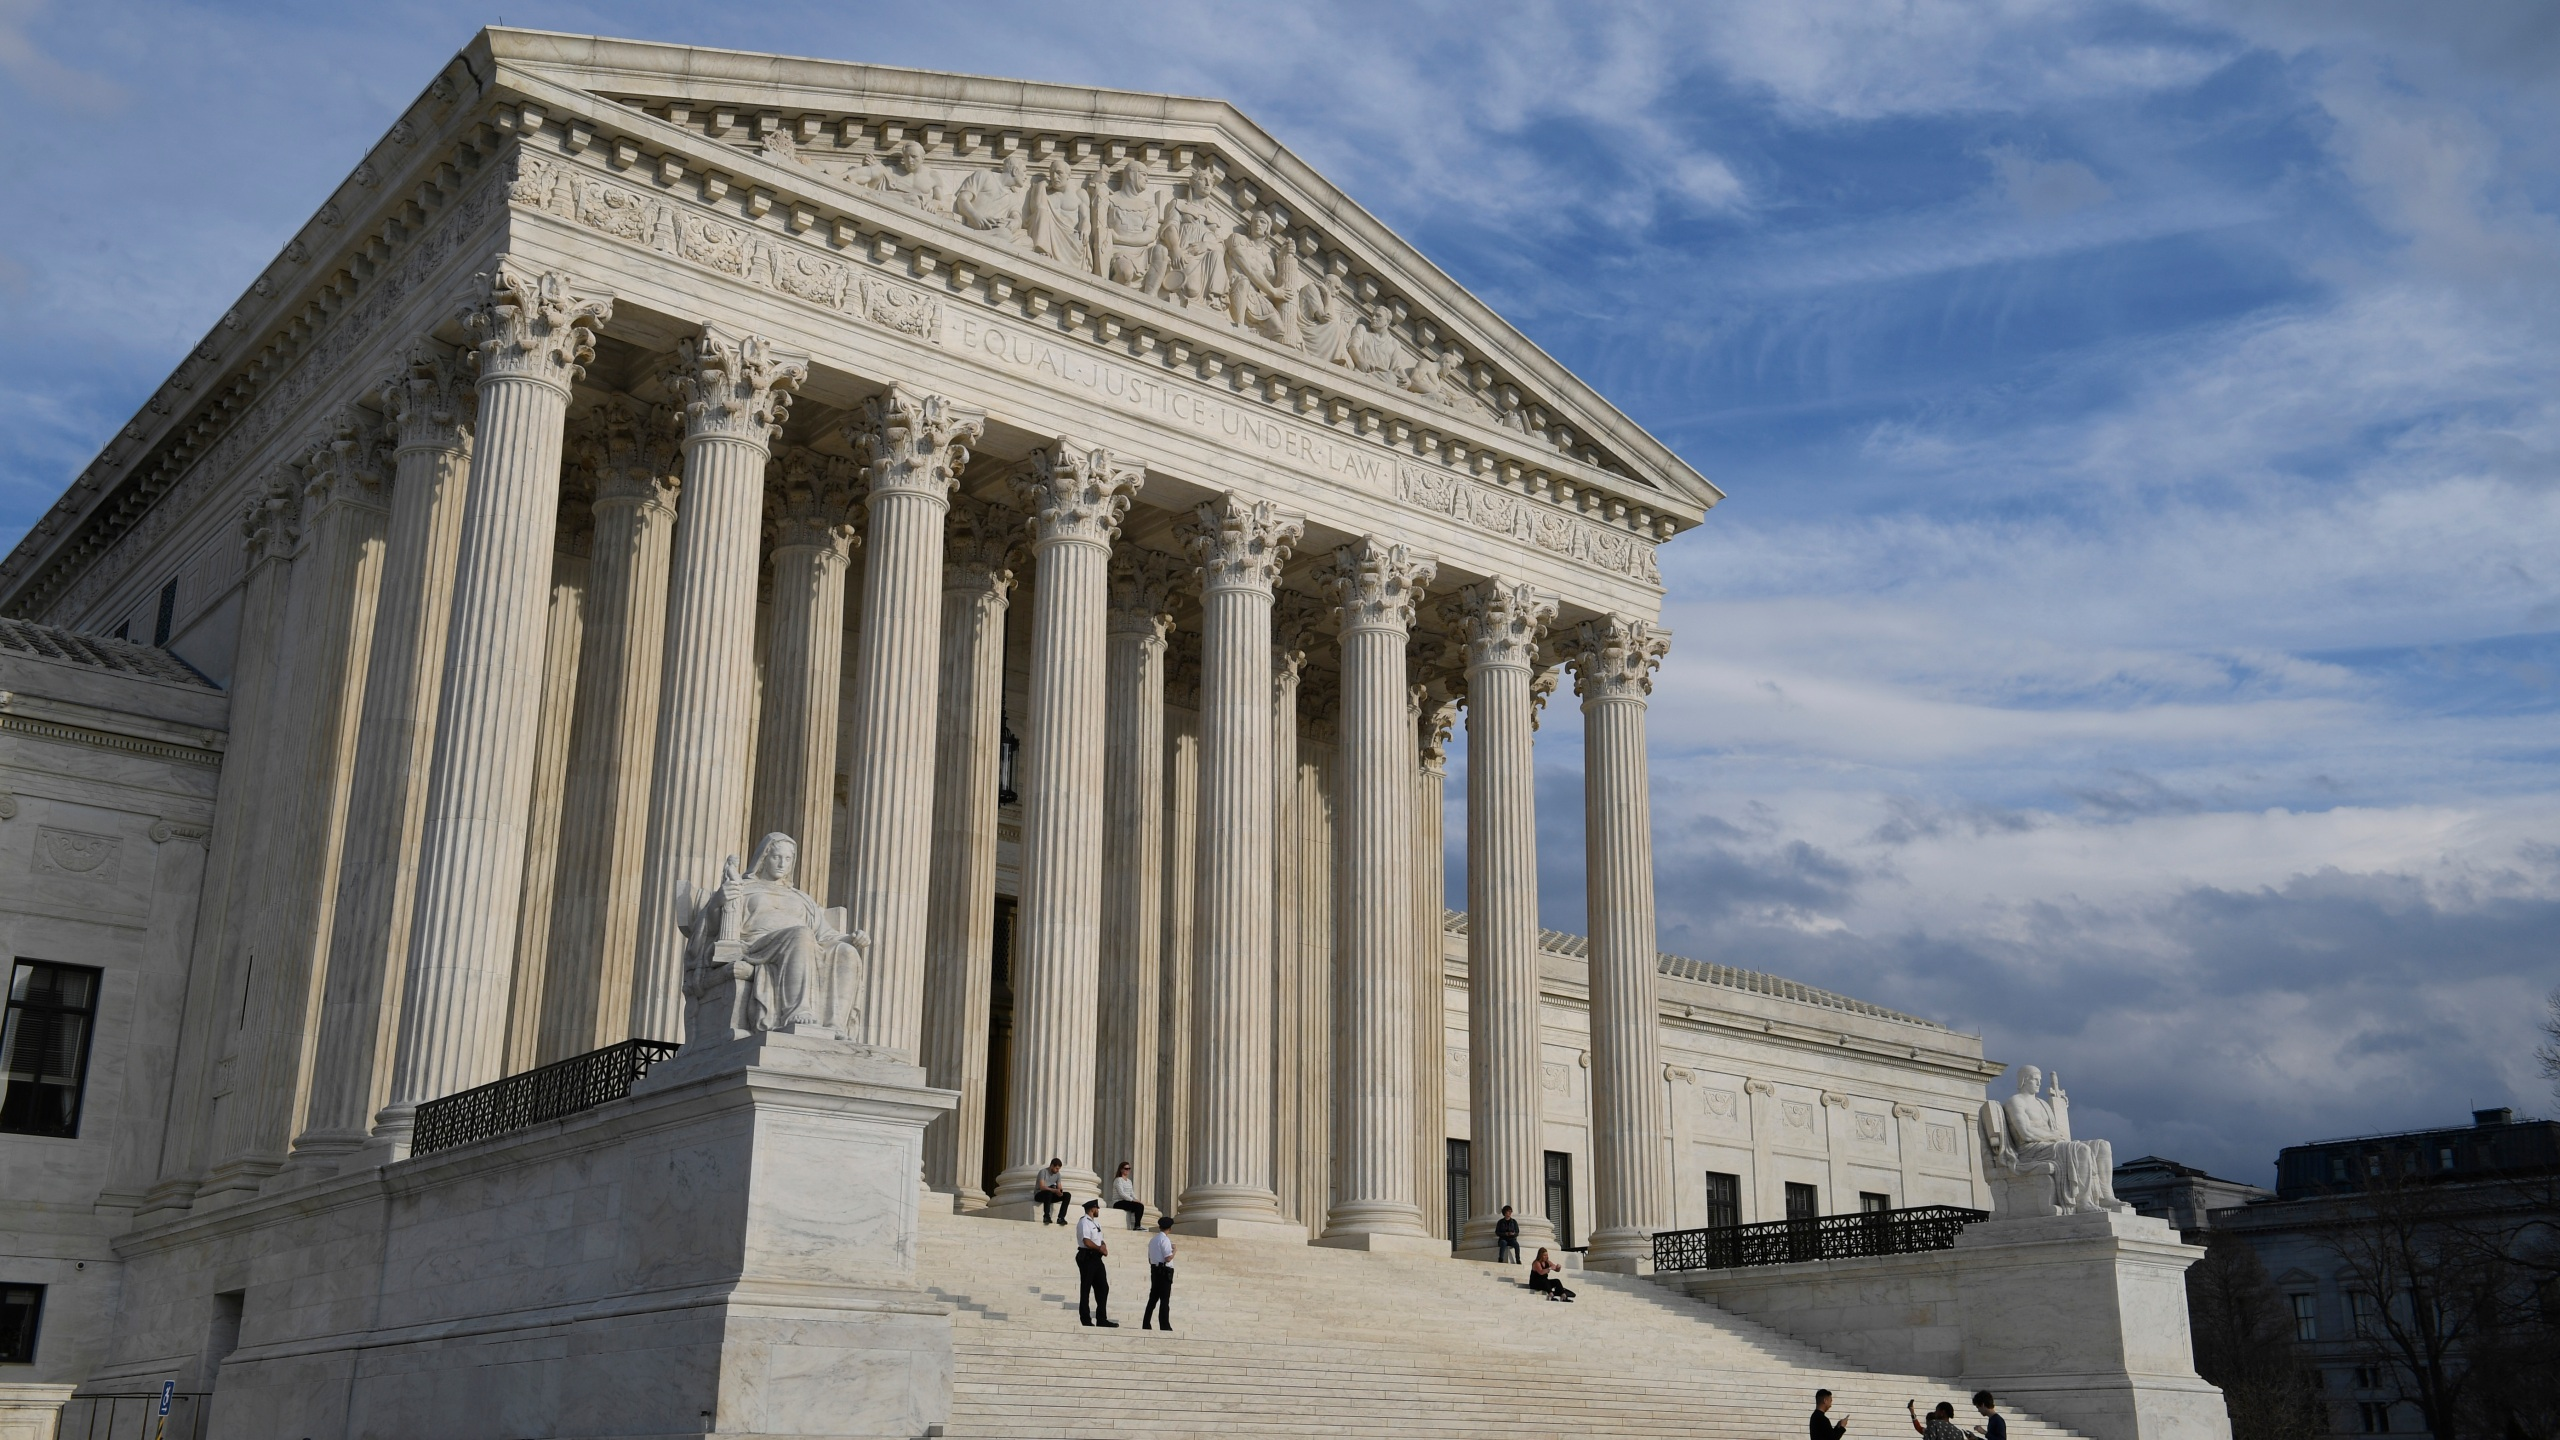 This March 15, 2019 file photo shows a view of the Supreme Court in Washington. (AP Photo/Susan Walsh)